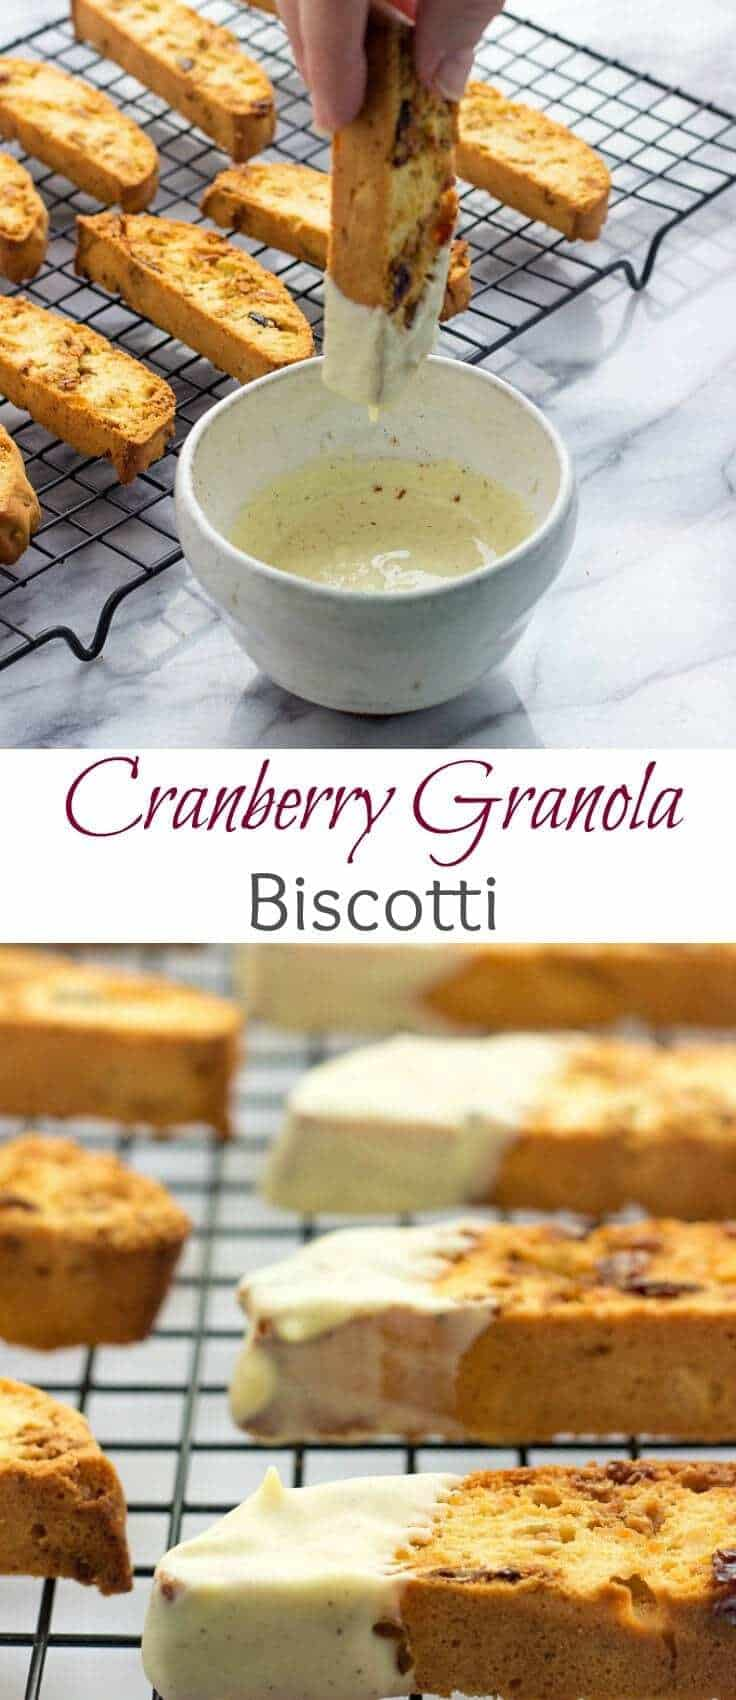 Cranberry Granola Biscotti | Cranberry Biscotti Recipe | Cranberry Biscotti With White Chocolate Dip | Cranberry Biscotti Recipe For Breakfast